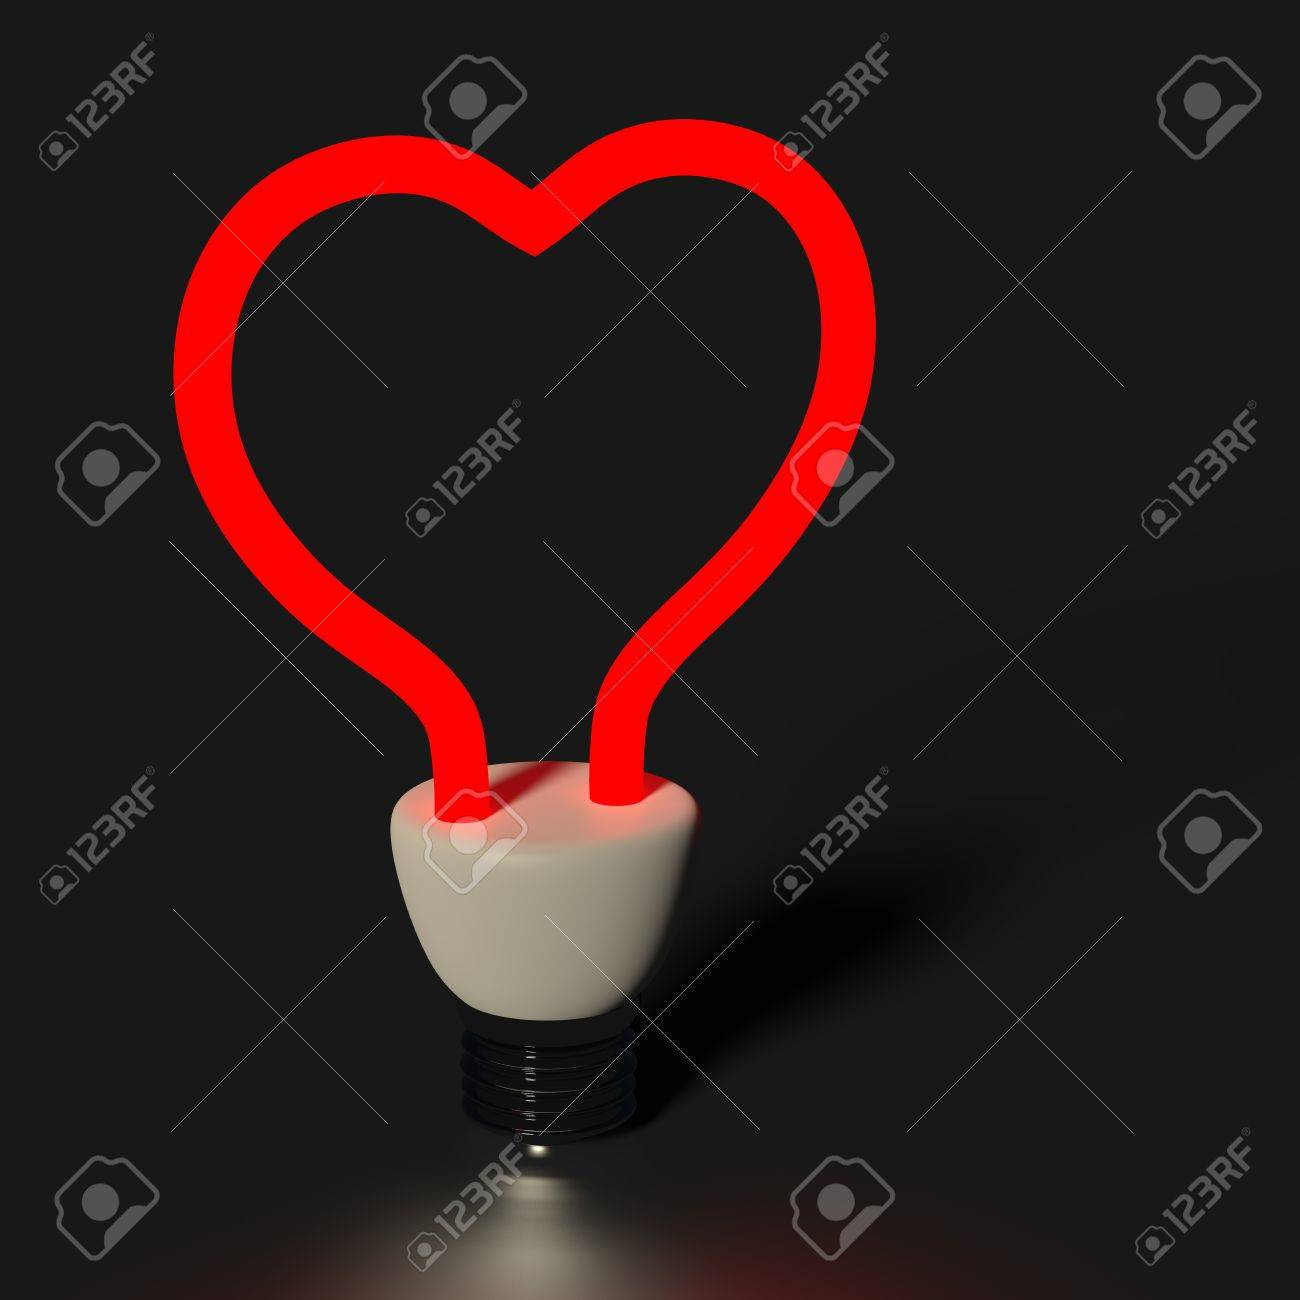 Red heart shaped light bulb isolated on black Stock Photo - 12989923